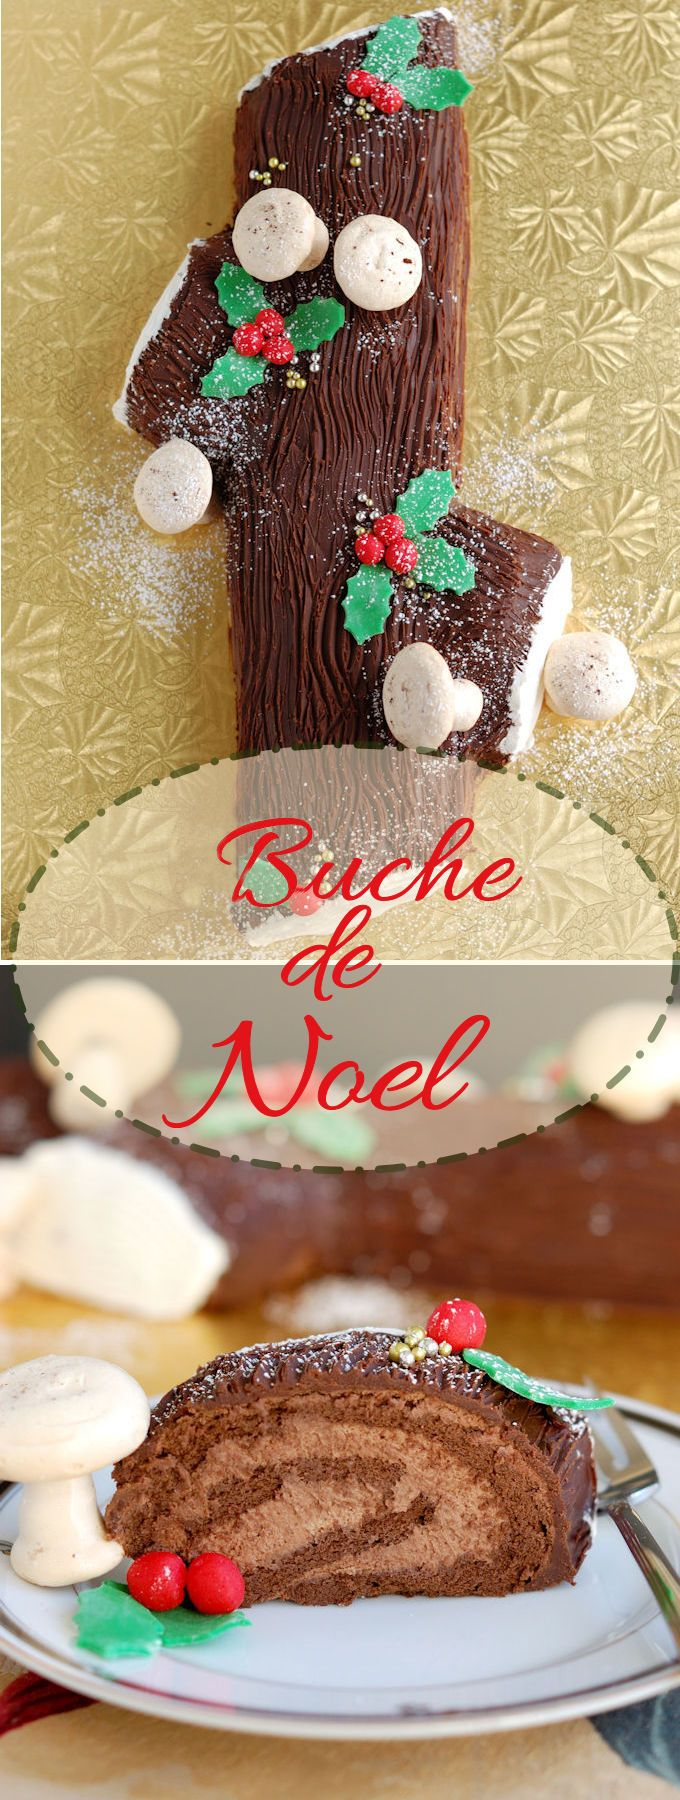 How to make a christmas yule log decoration - Bouche De Noel Or Yule Log Cake Makes A Spectacular Centerpiece For Your Christmas Dinner Table Get The Recipe And See Detailed How To Photos